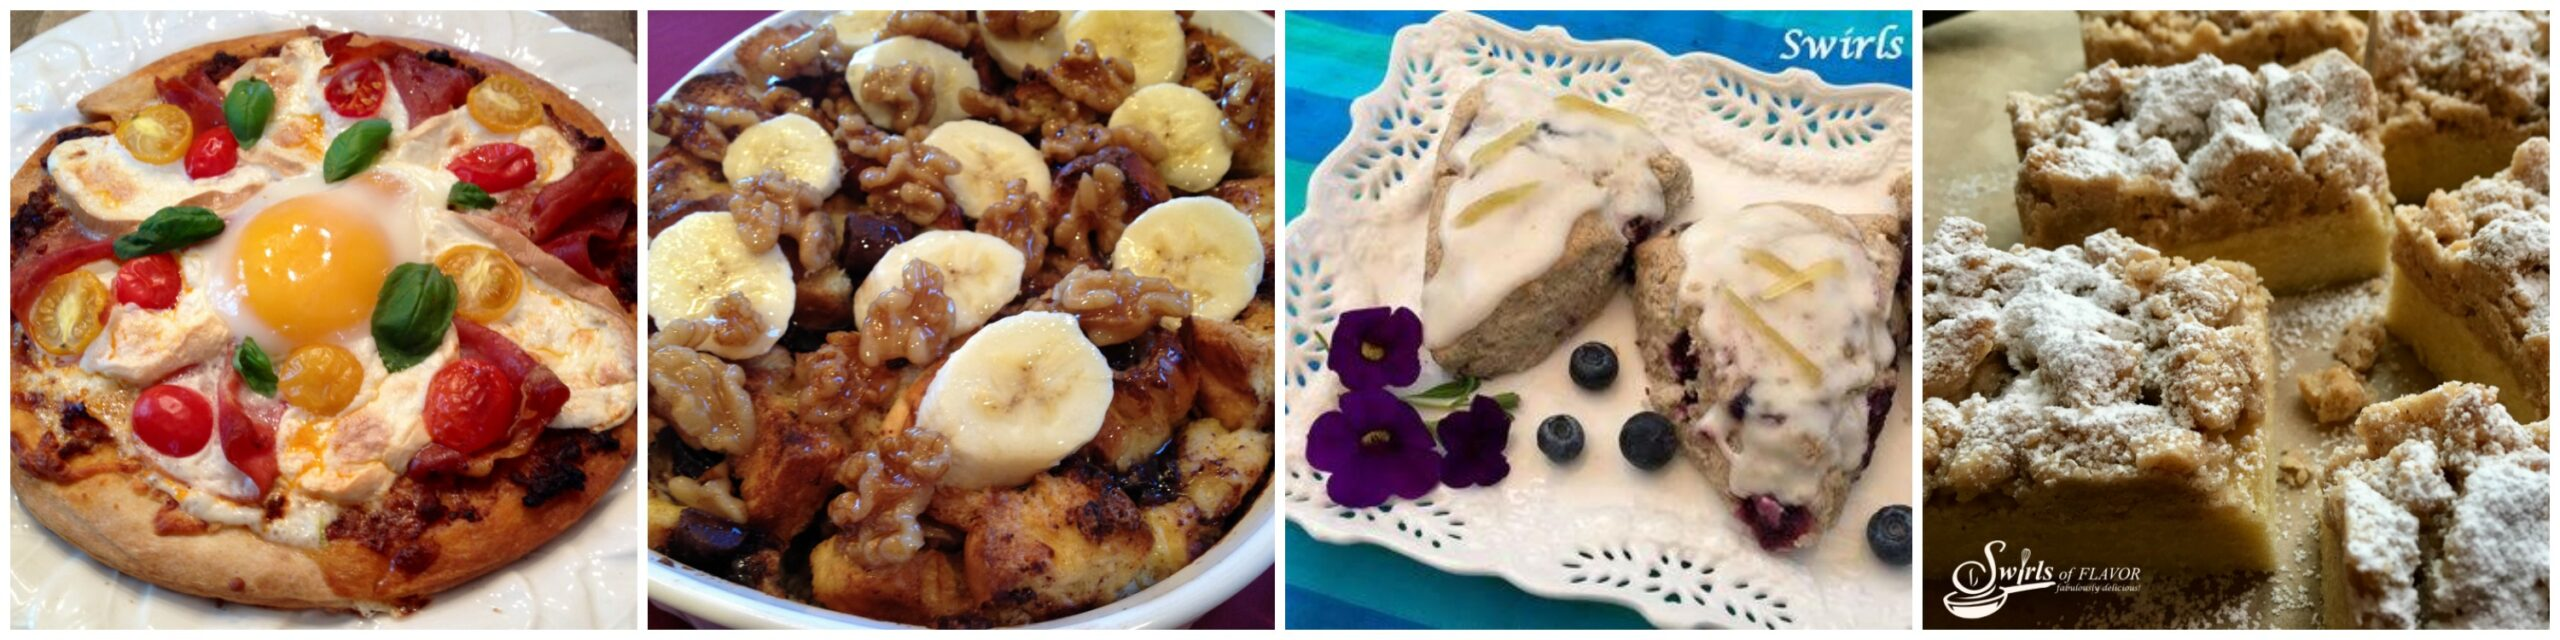 Left to Right: Breakfast Pizza; Banana Bread Pudding; Blueberry Scones; Crumb Cake